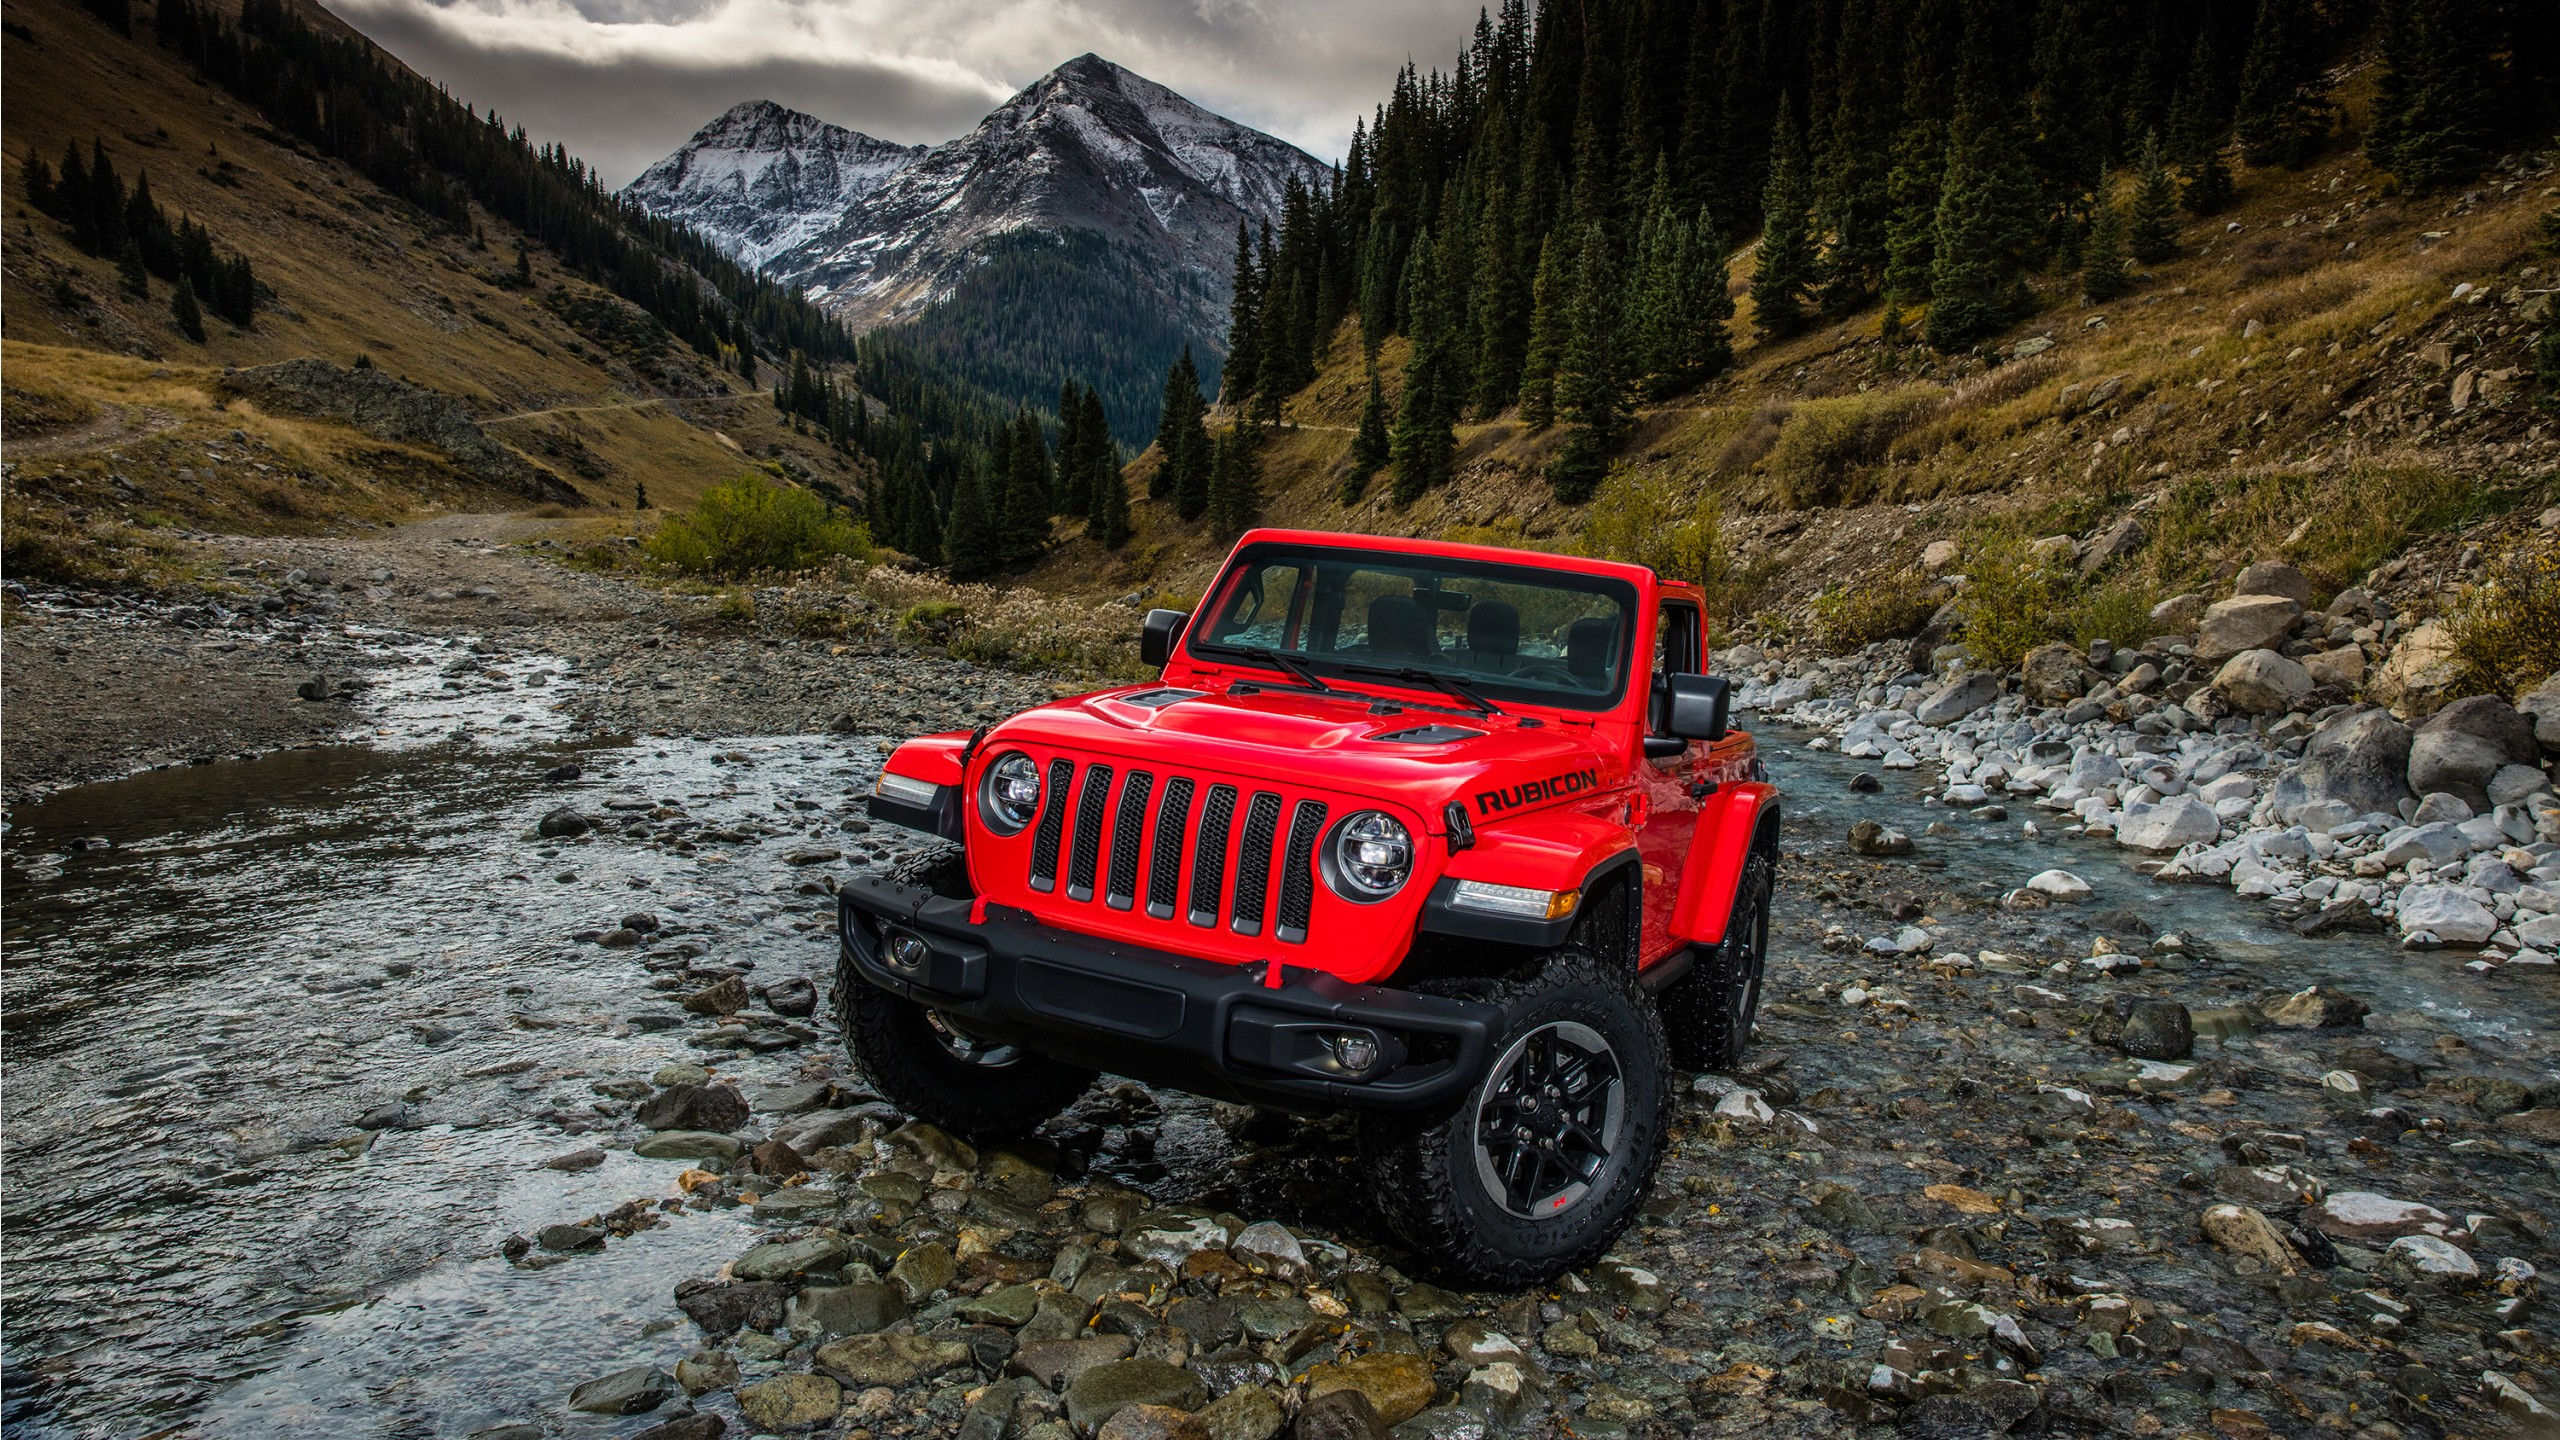 2017 Jeep Grand Cherokee Srt >> 2018 Jeep Wrangler Rubicon Wallpaper | HD Car Wallpapers ...